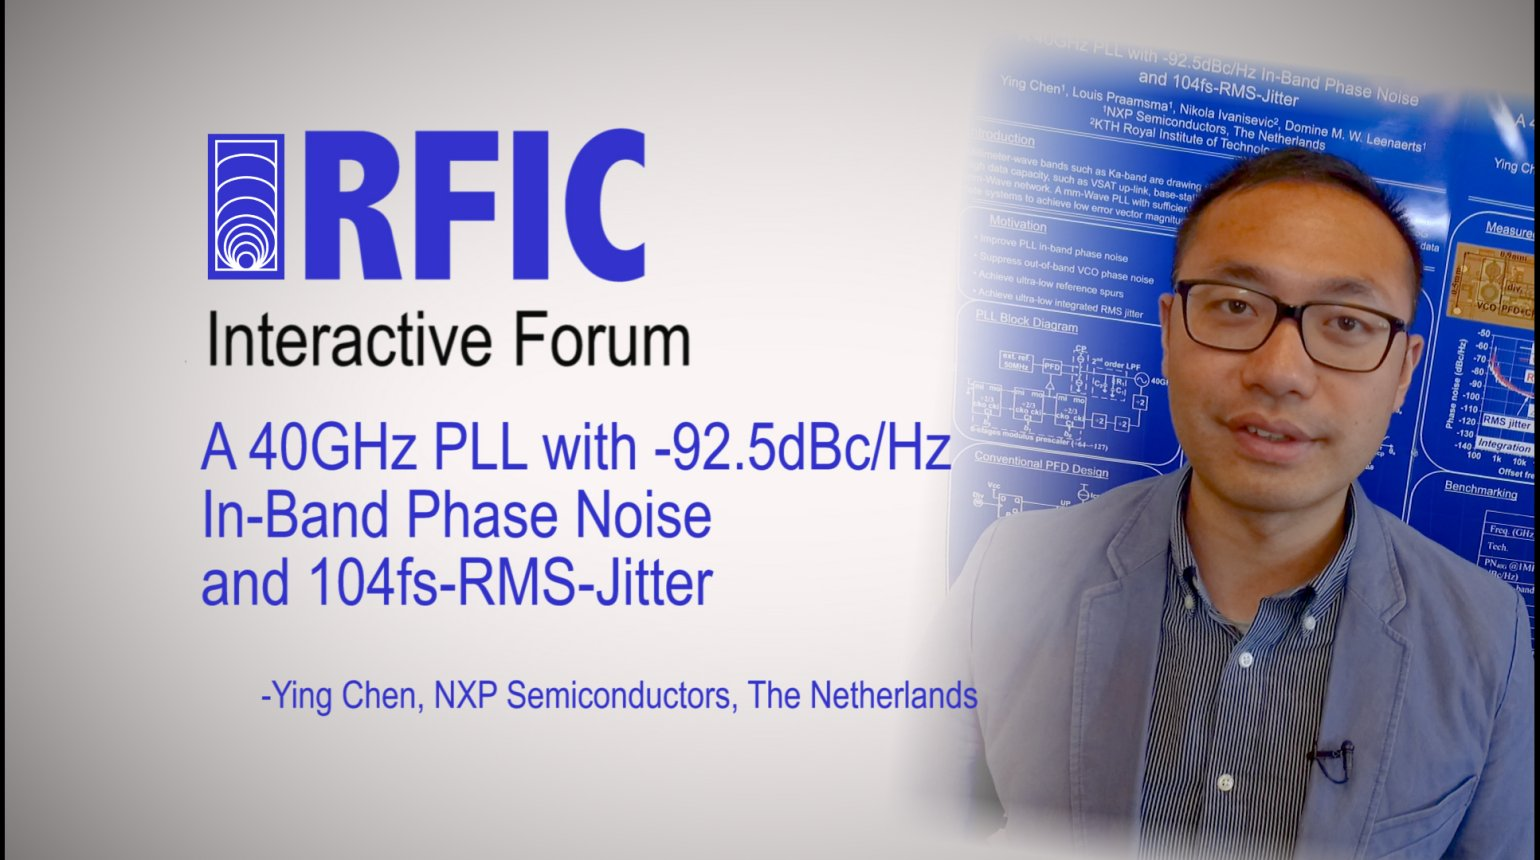 A 40GHz PLL with -92.5dBc/Hz In-Band Phase Noise and 104fs-RMS-Jitter: RFIC Interactive Forum 2017